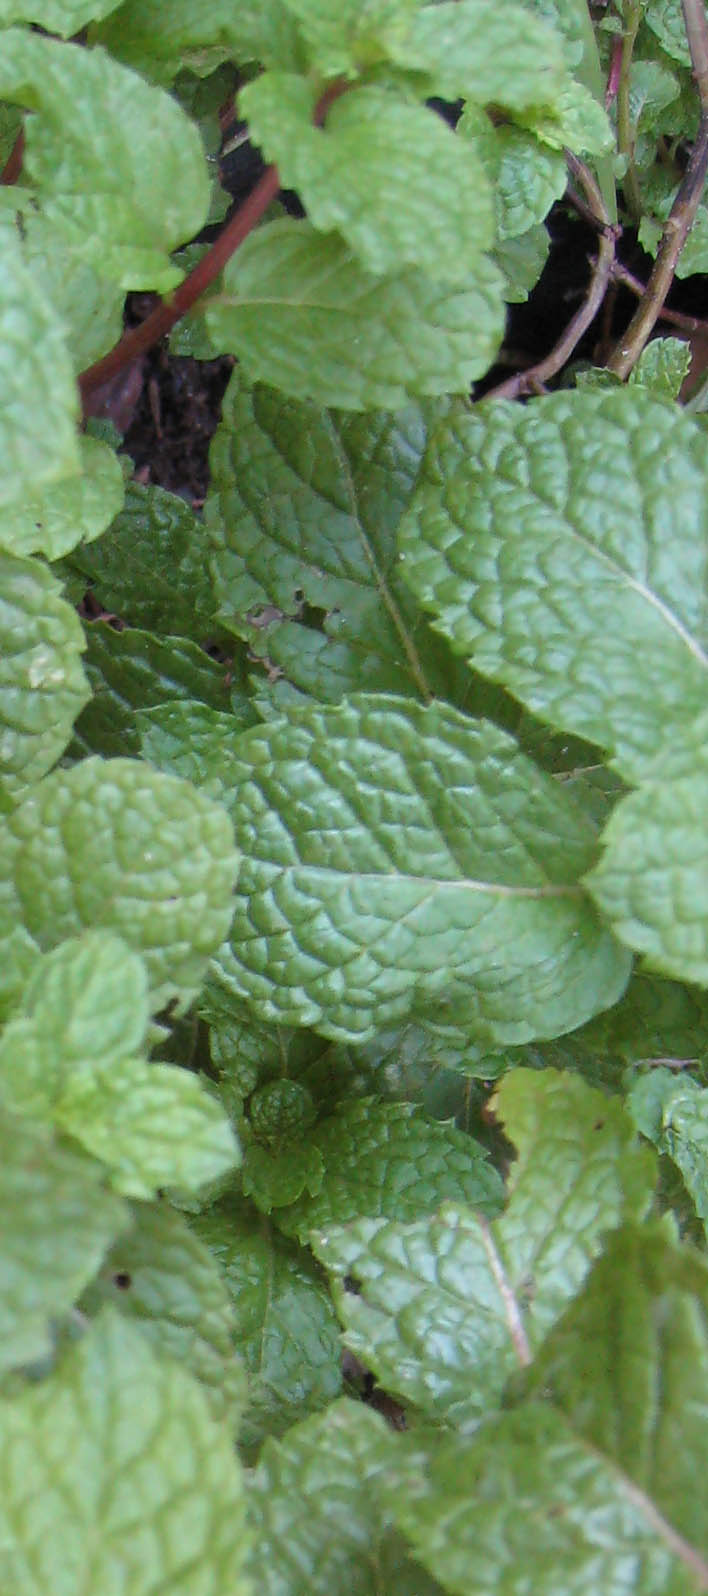 A cool sprig of mint ready to pluck.